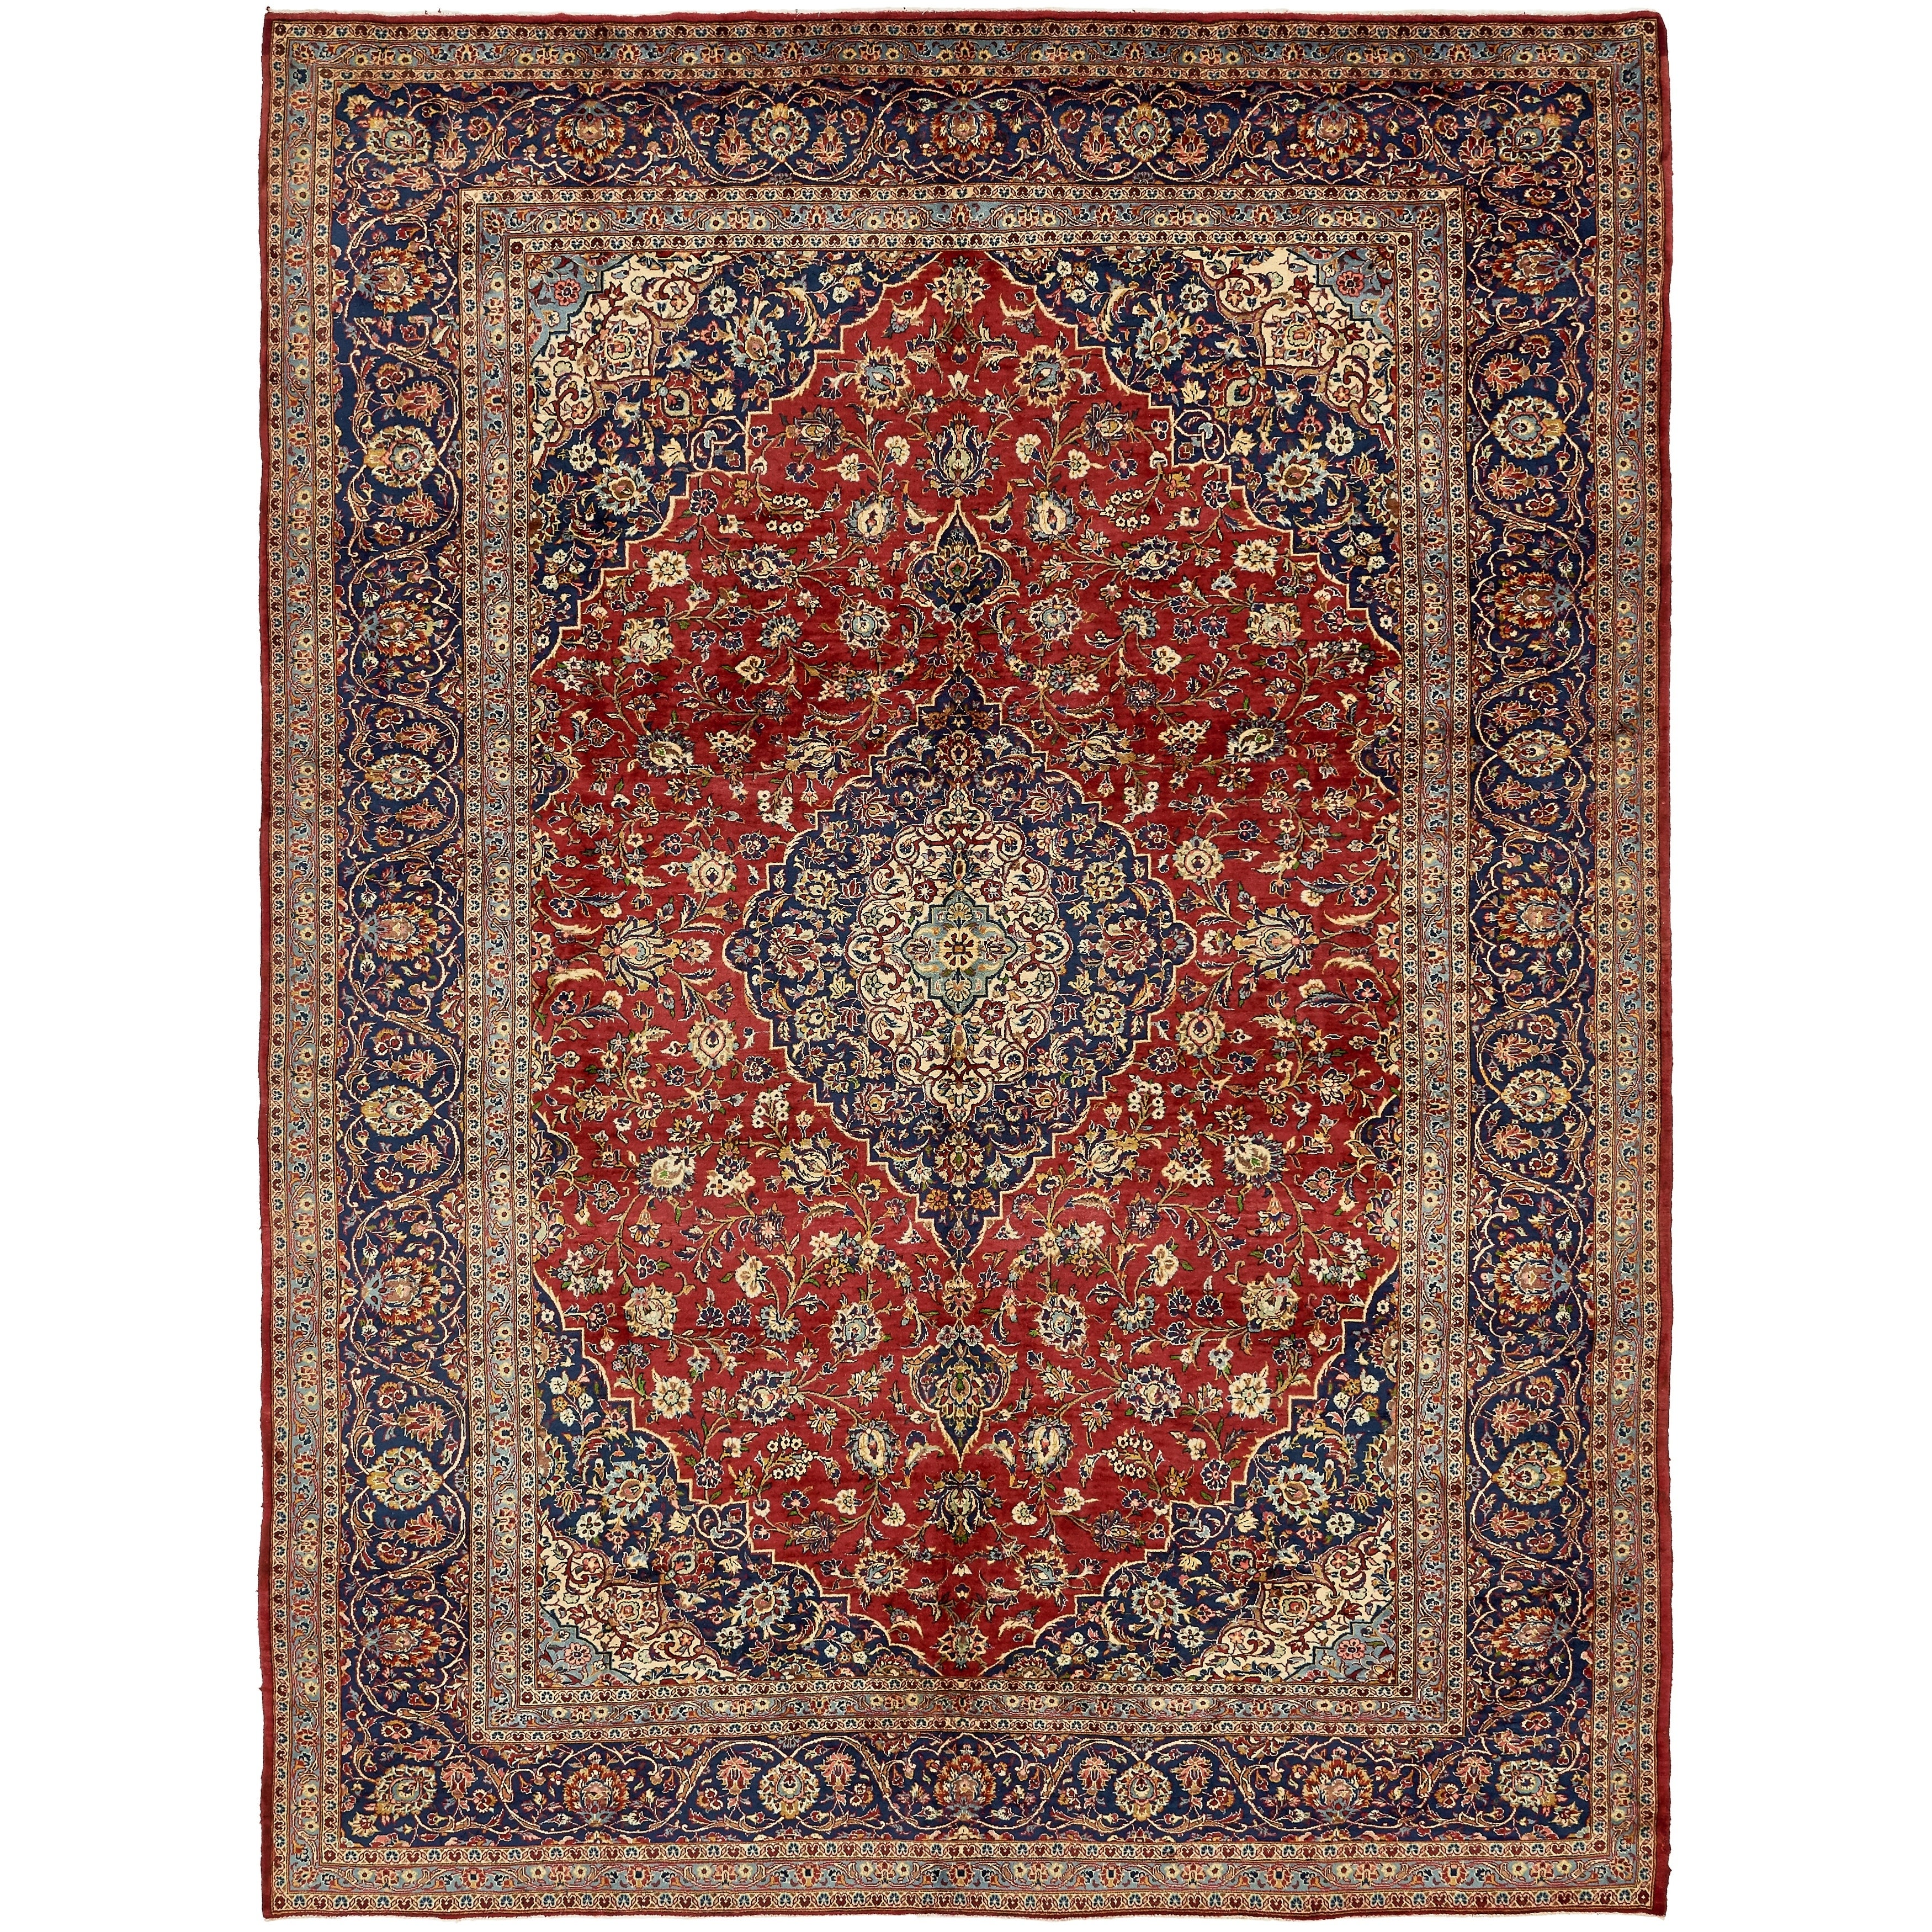 Hand Knotted Kashan Semi Antique Wool Area Rug - 9' 8 x 13' (Red - 9' 8 x 13')